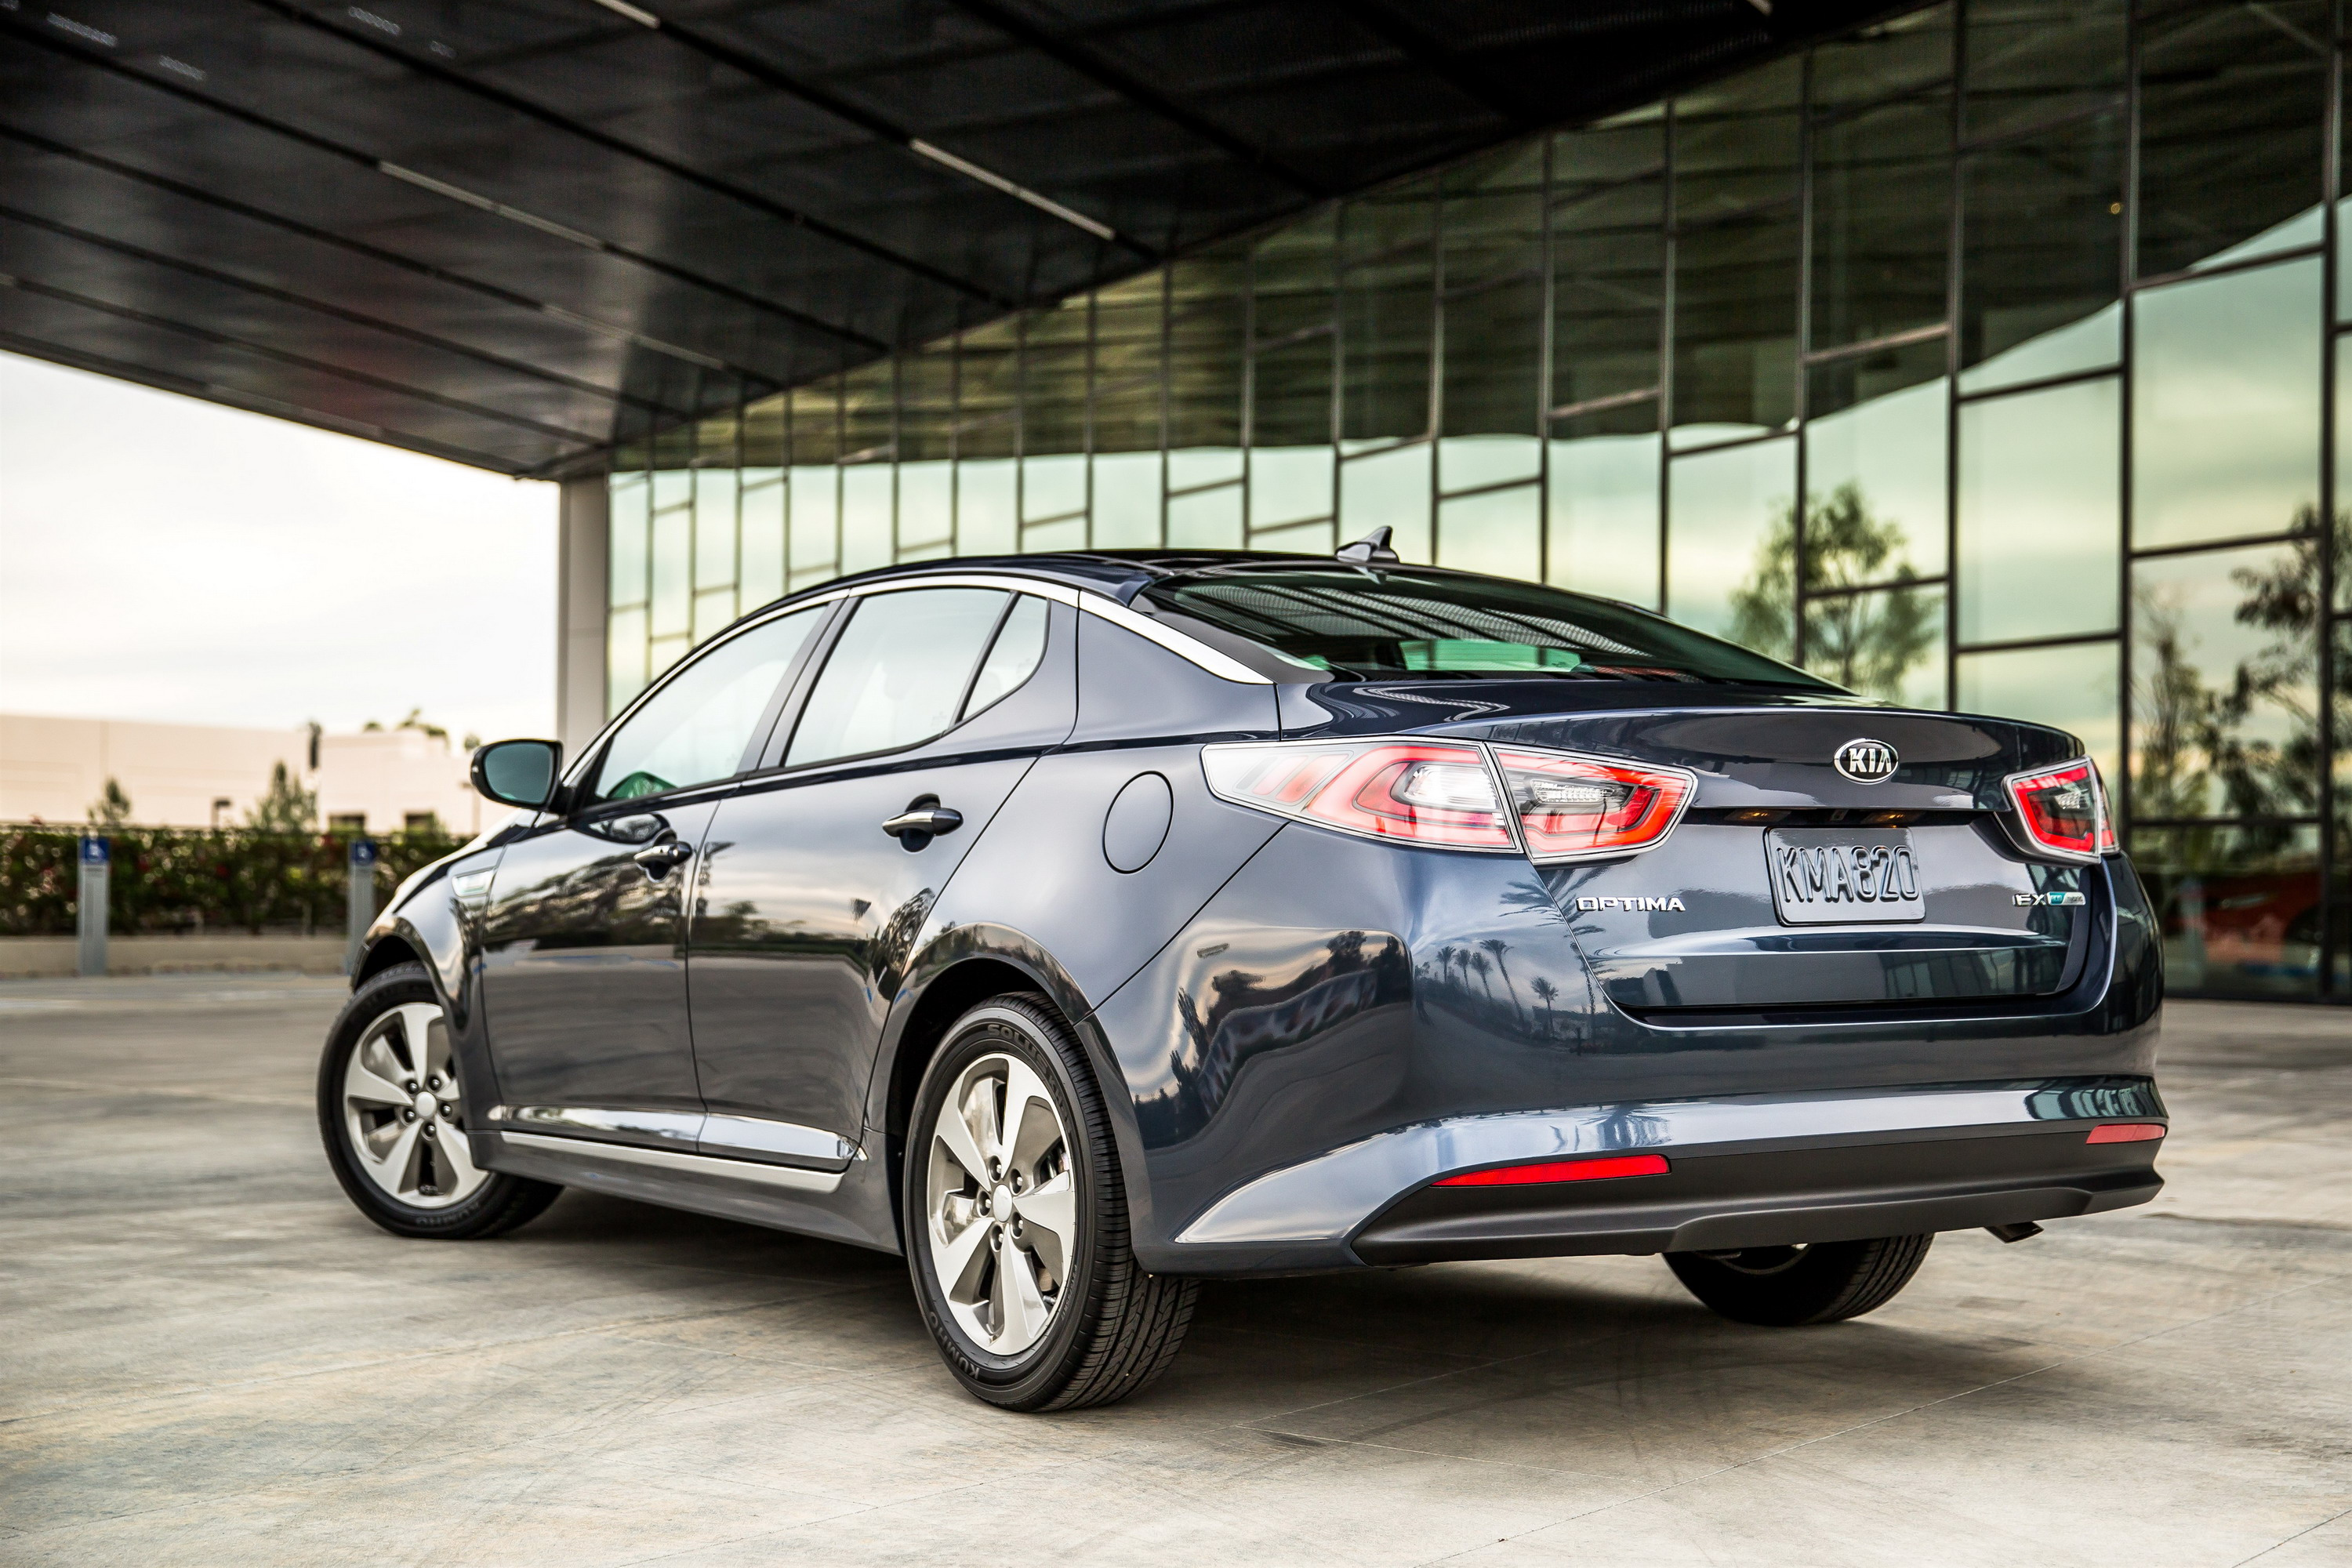 lallier on zoom en used the pre km ans image inventory hybrid owned garantie optima kia